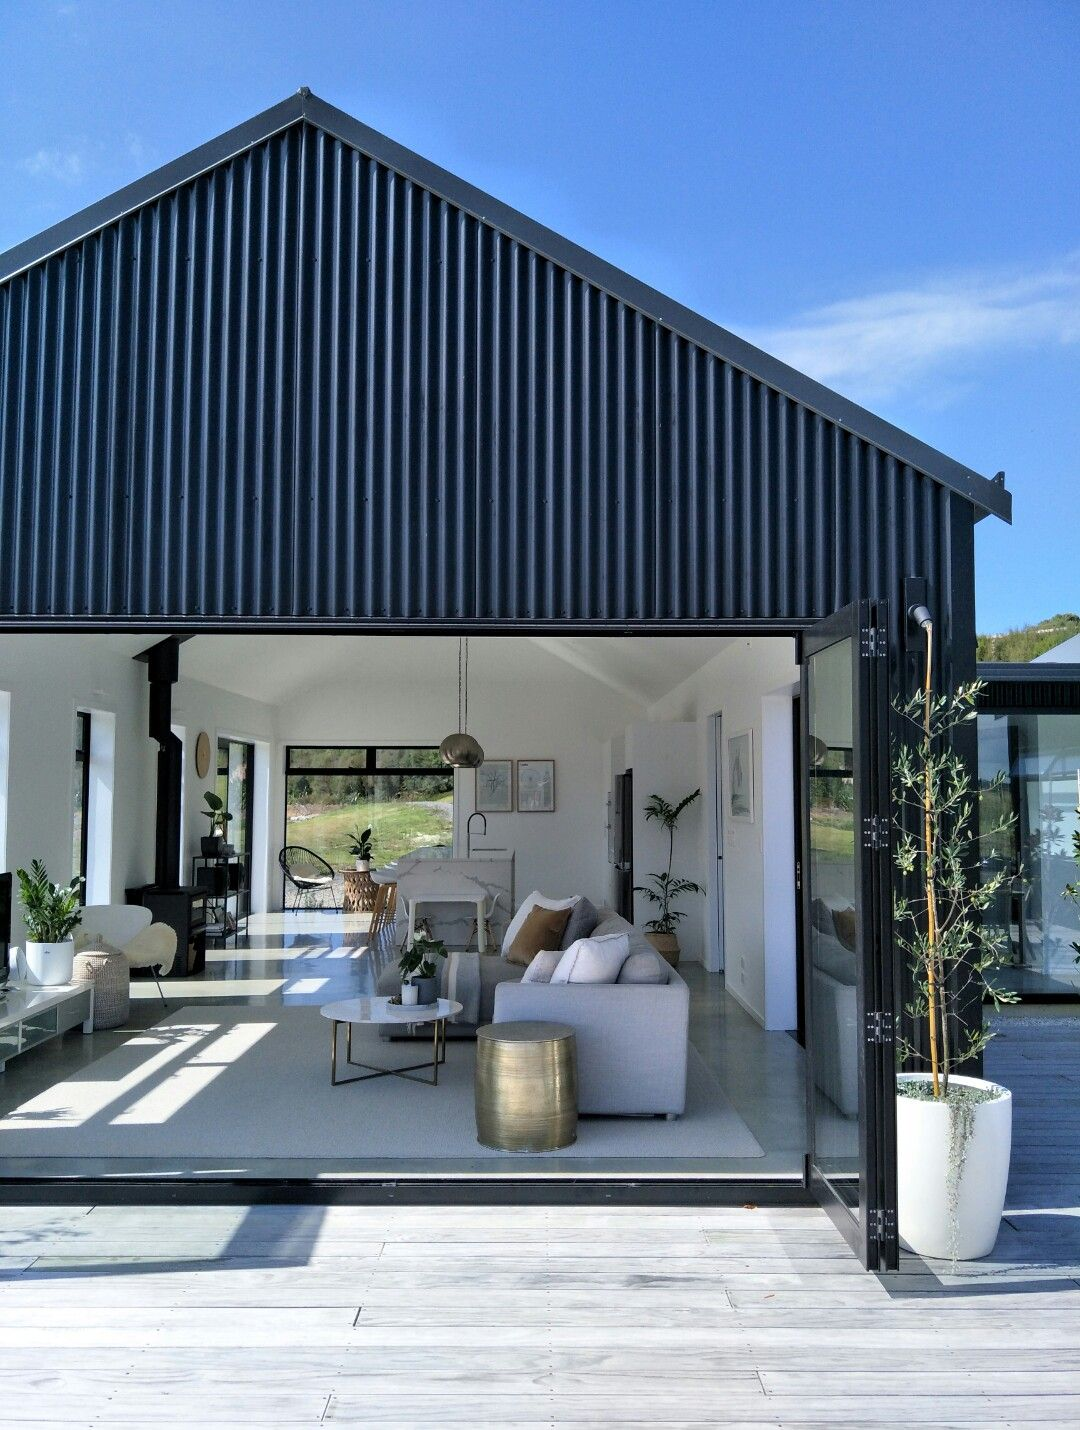 Full Service Interior Design And Styling For A New Build In Algies Bay Celene Interiors Auckland Barn Style House Modern Barn House House Designs Exterior